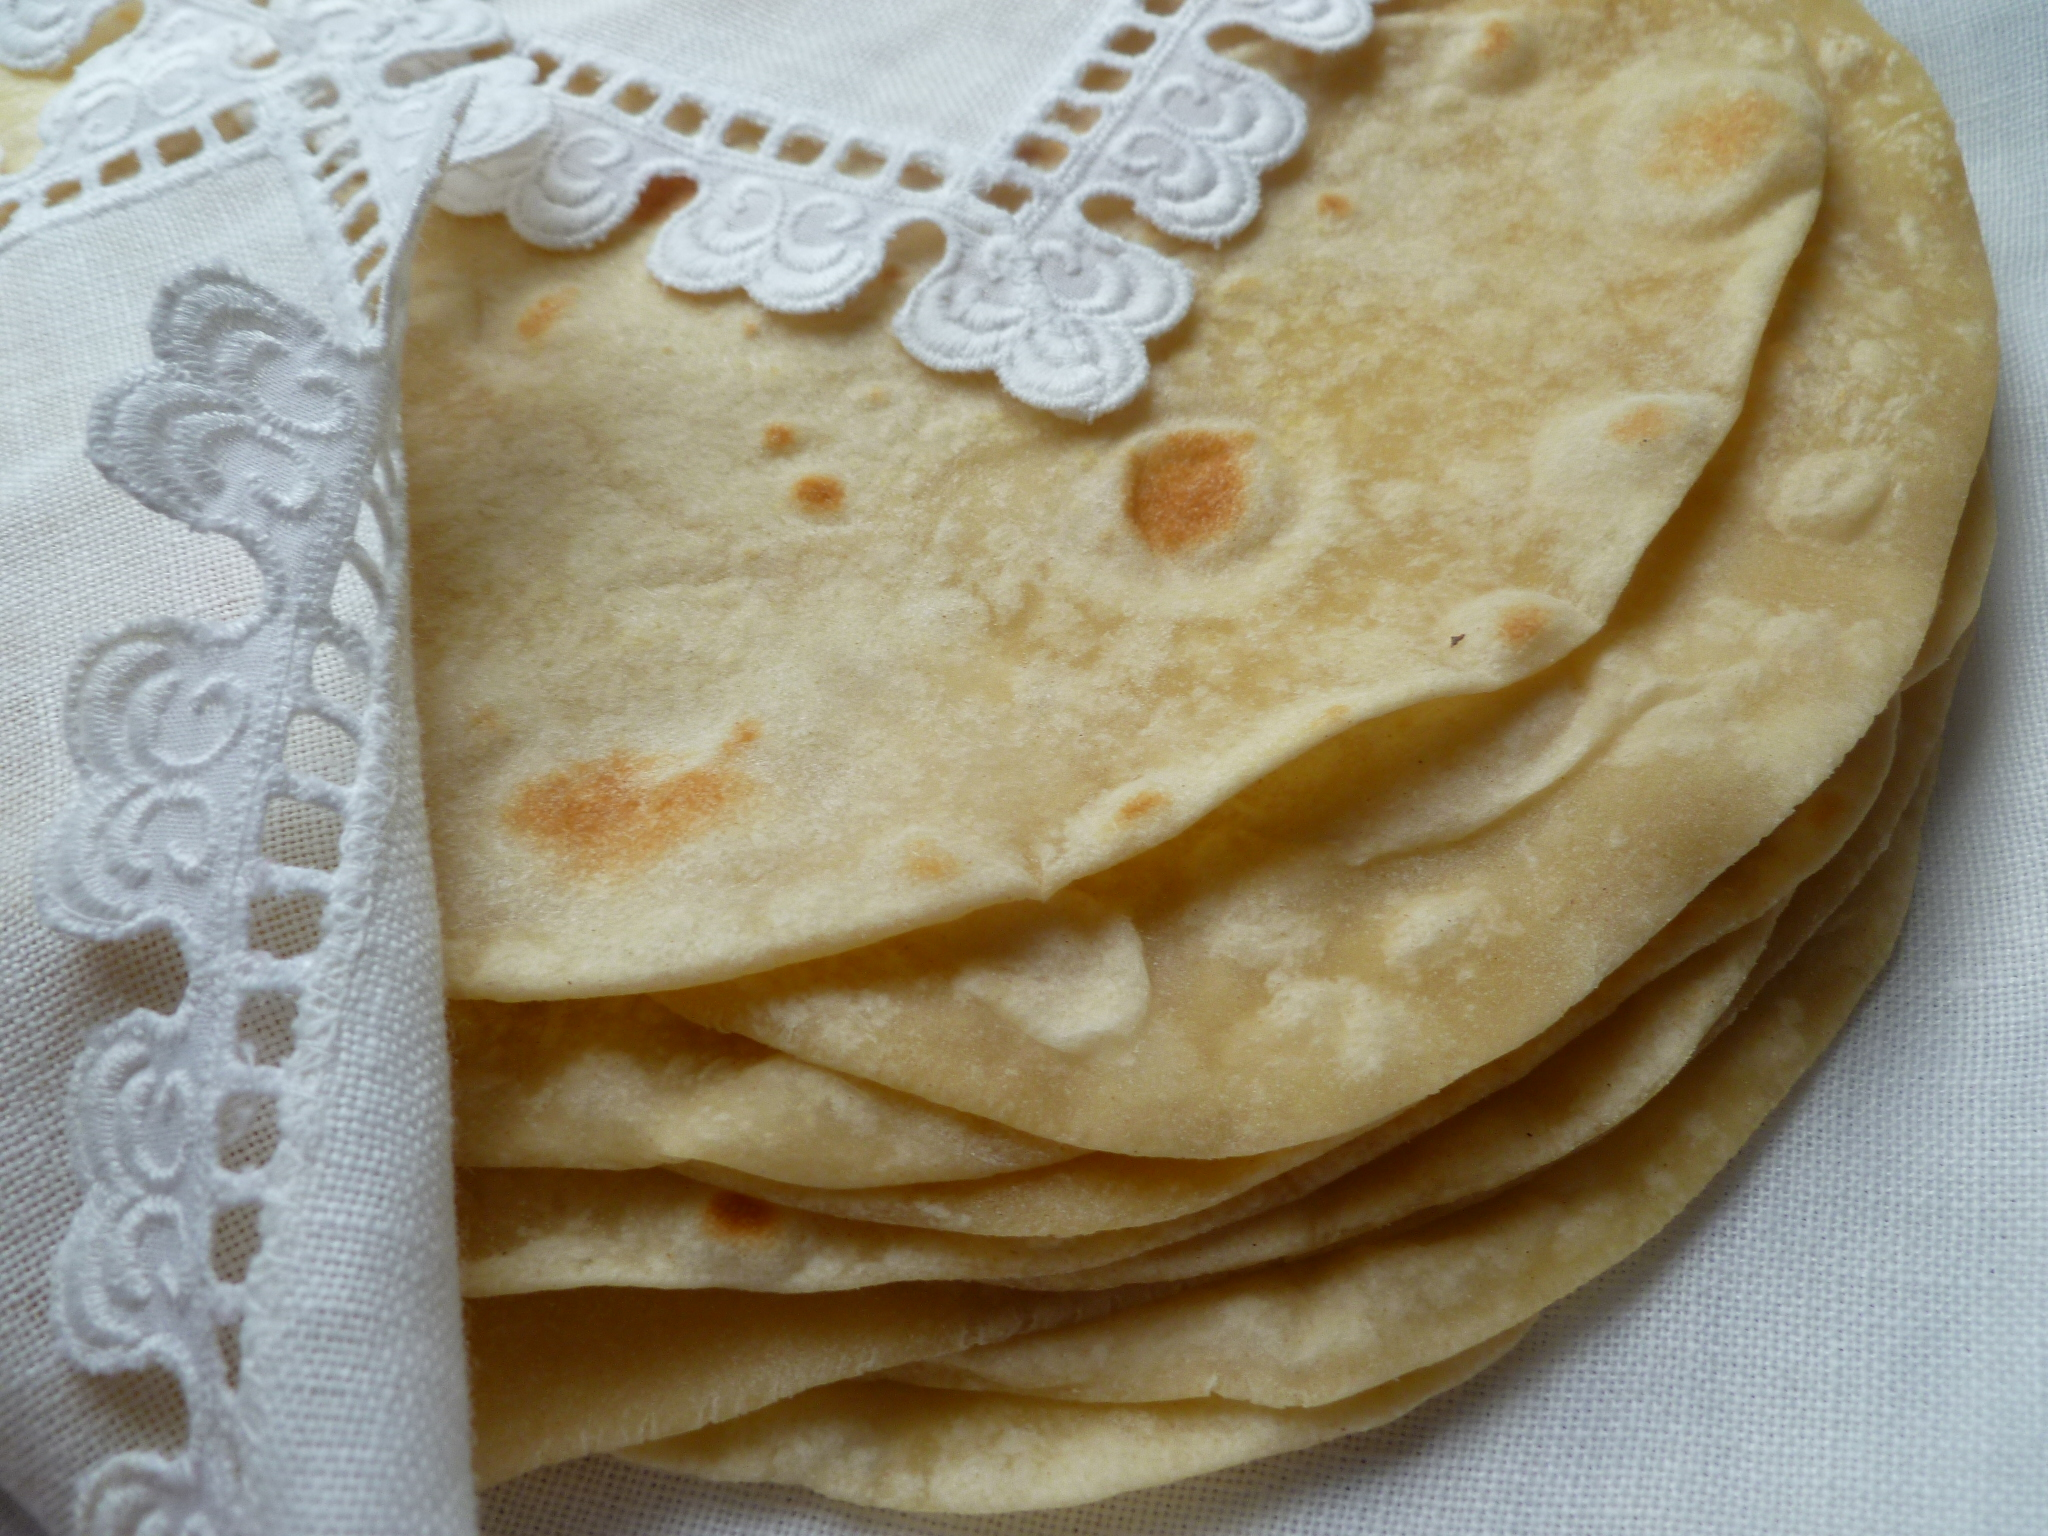 ... flour homemade flour tortillas homemade flour tortillas these homemade